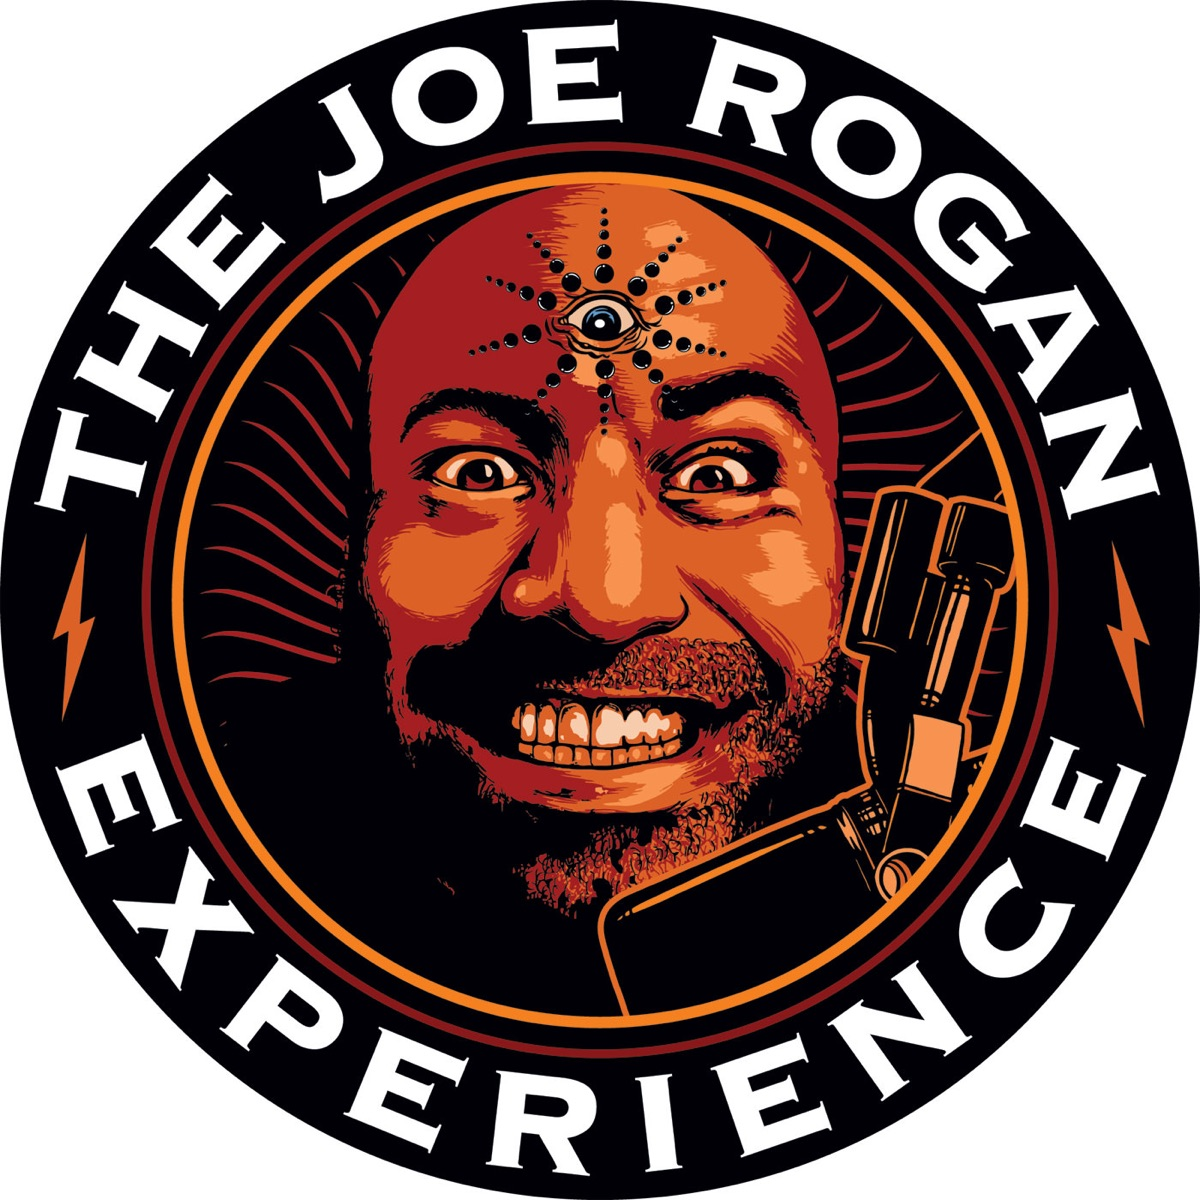 The Joe Rogan Experience